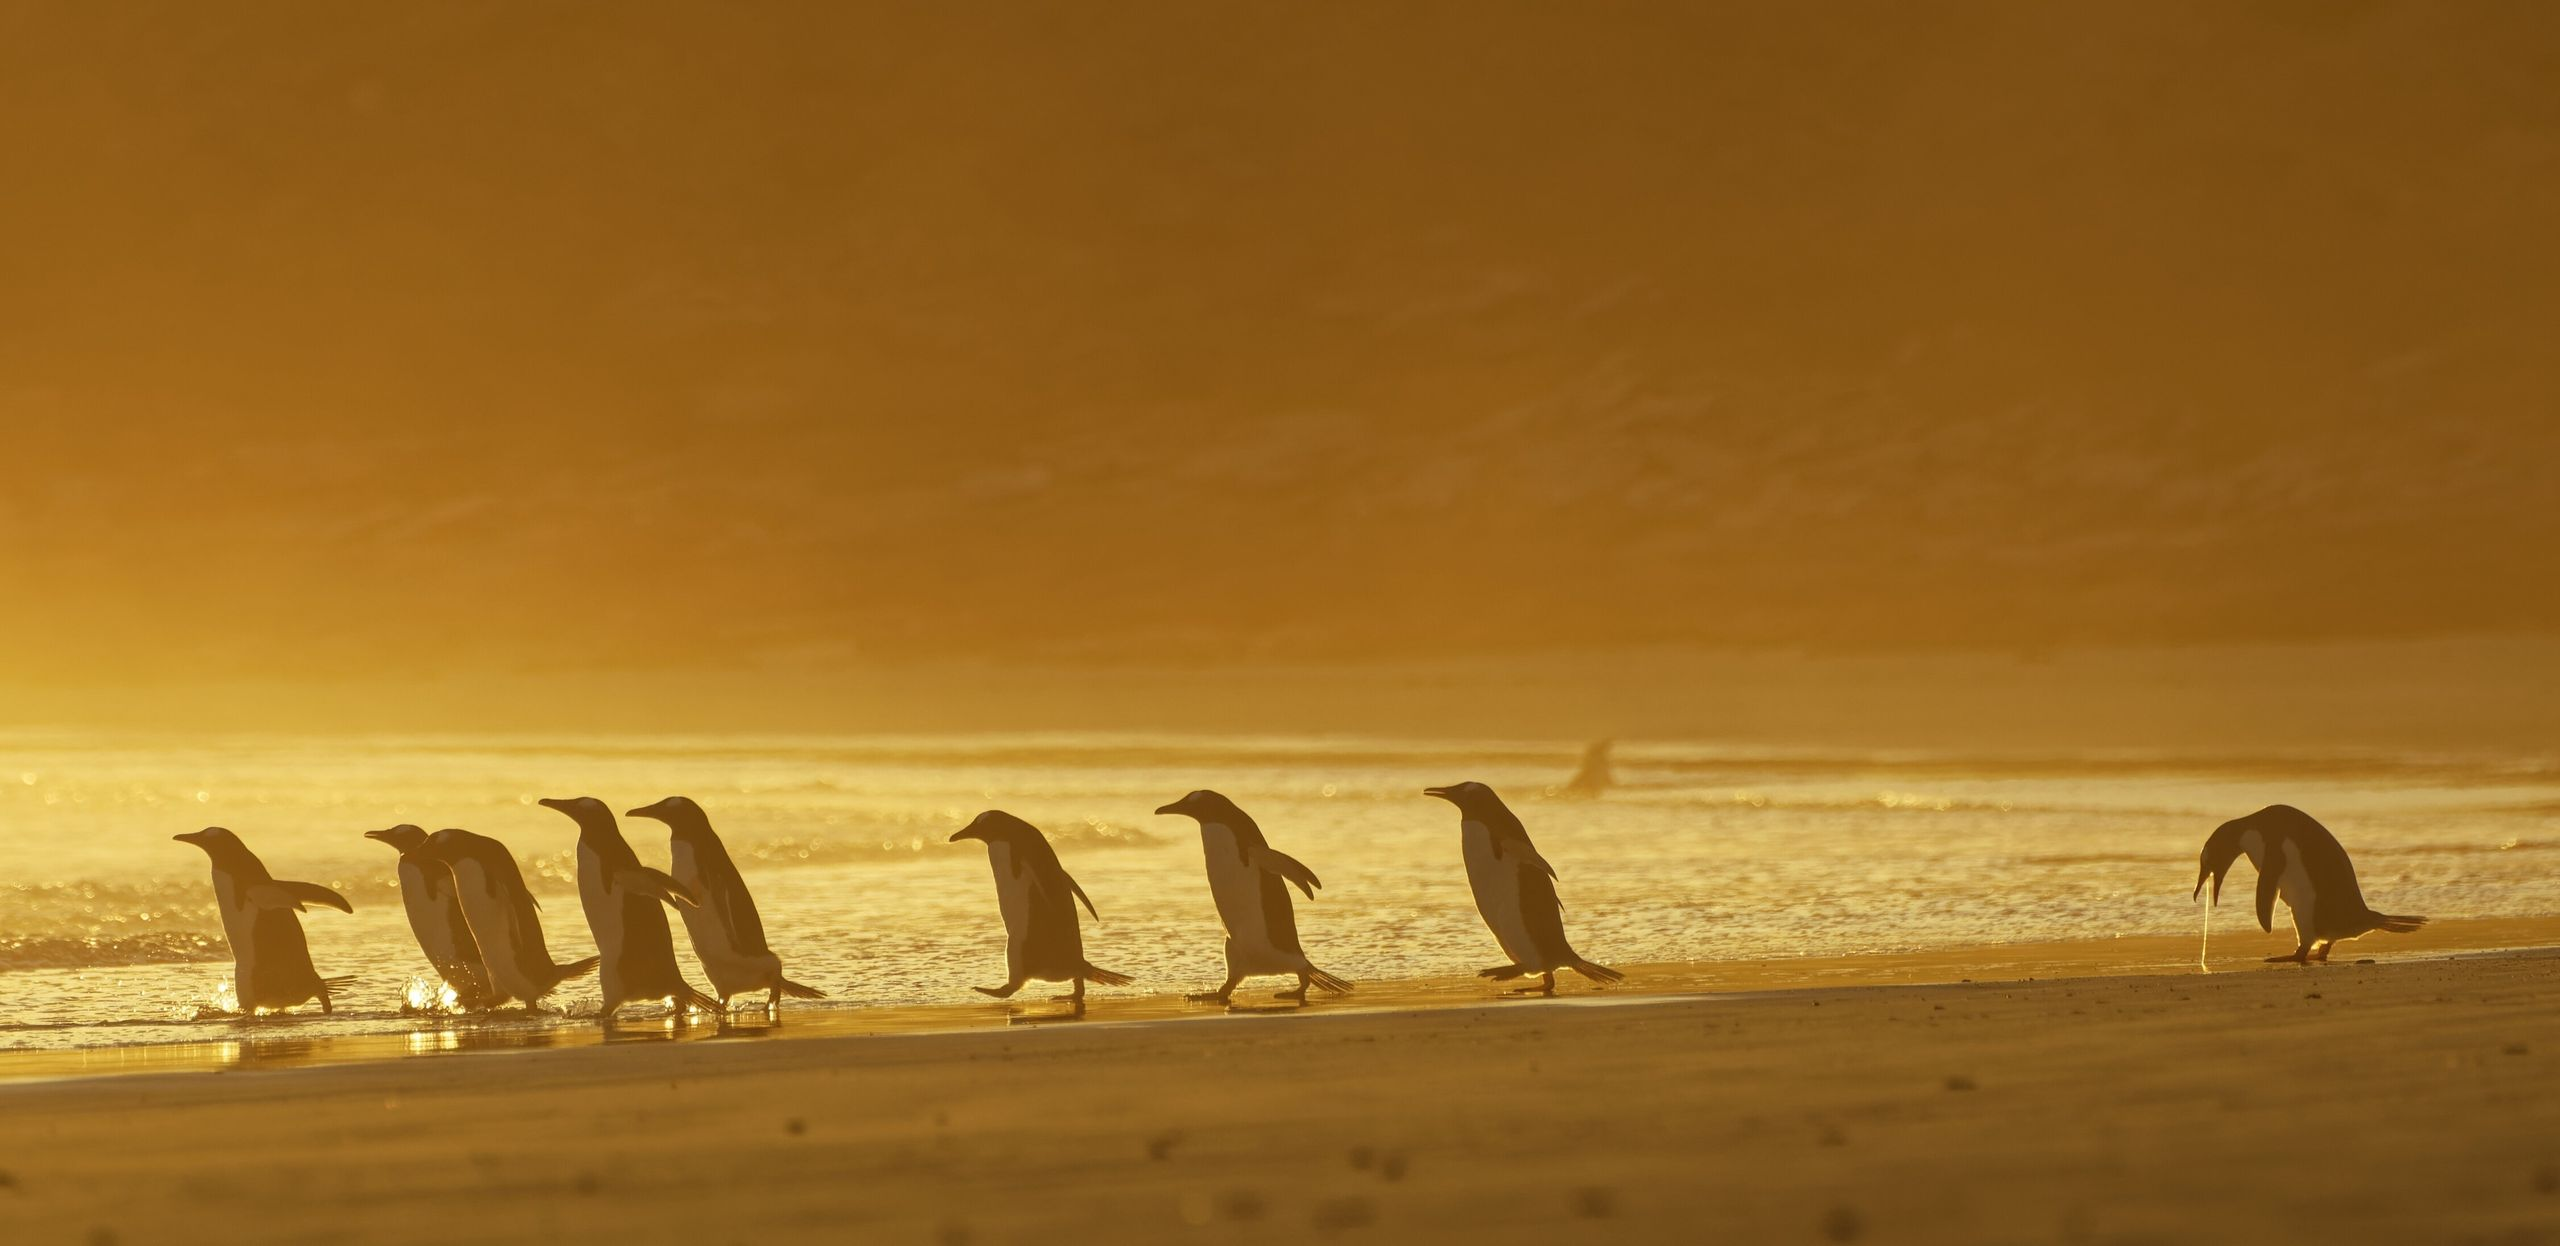 """I Could Puke"" shows a group of gentoo penguins in the Falkland Islands at sunrise."